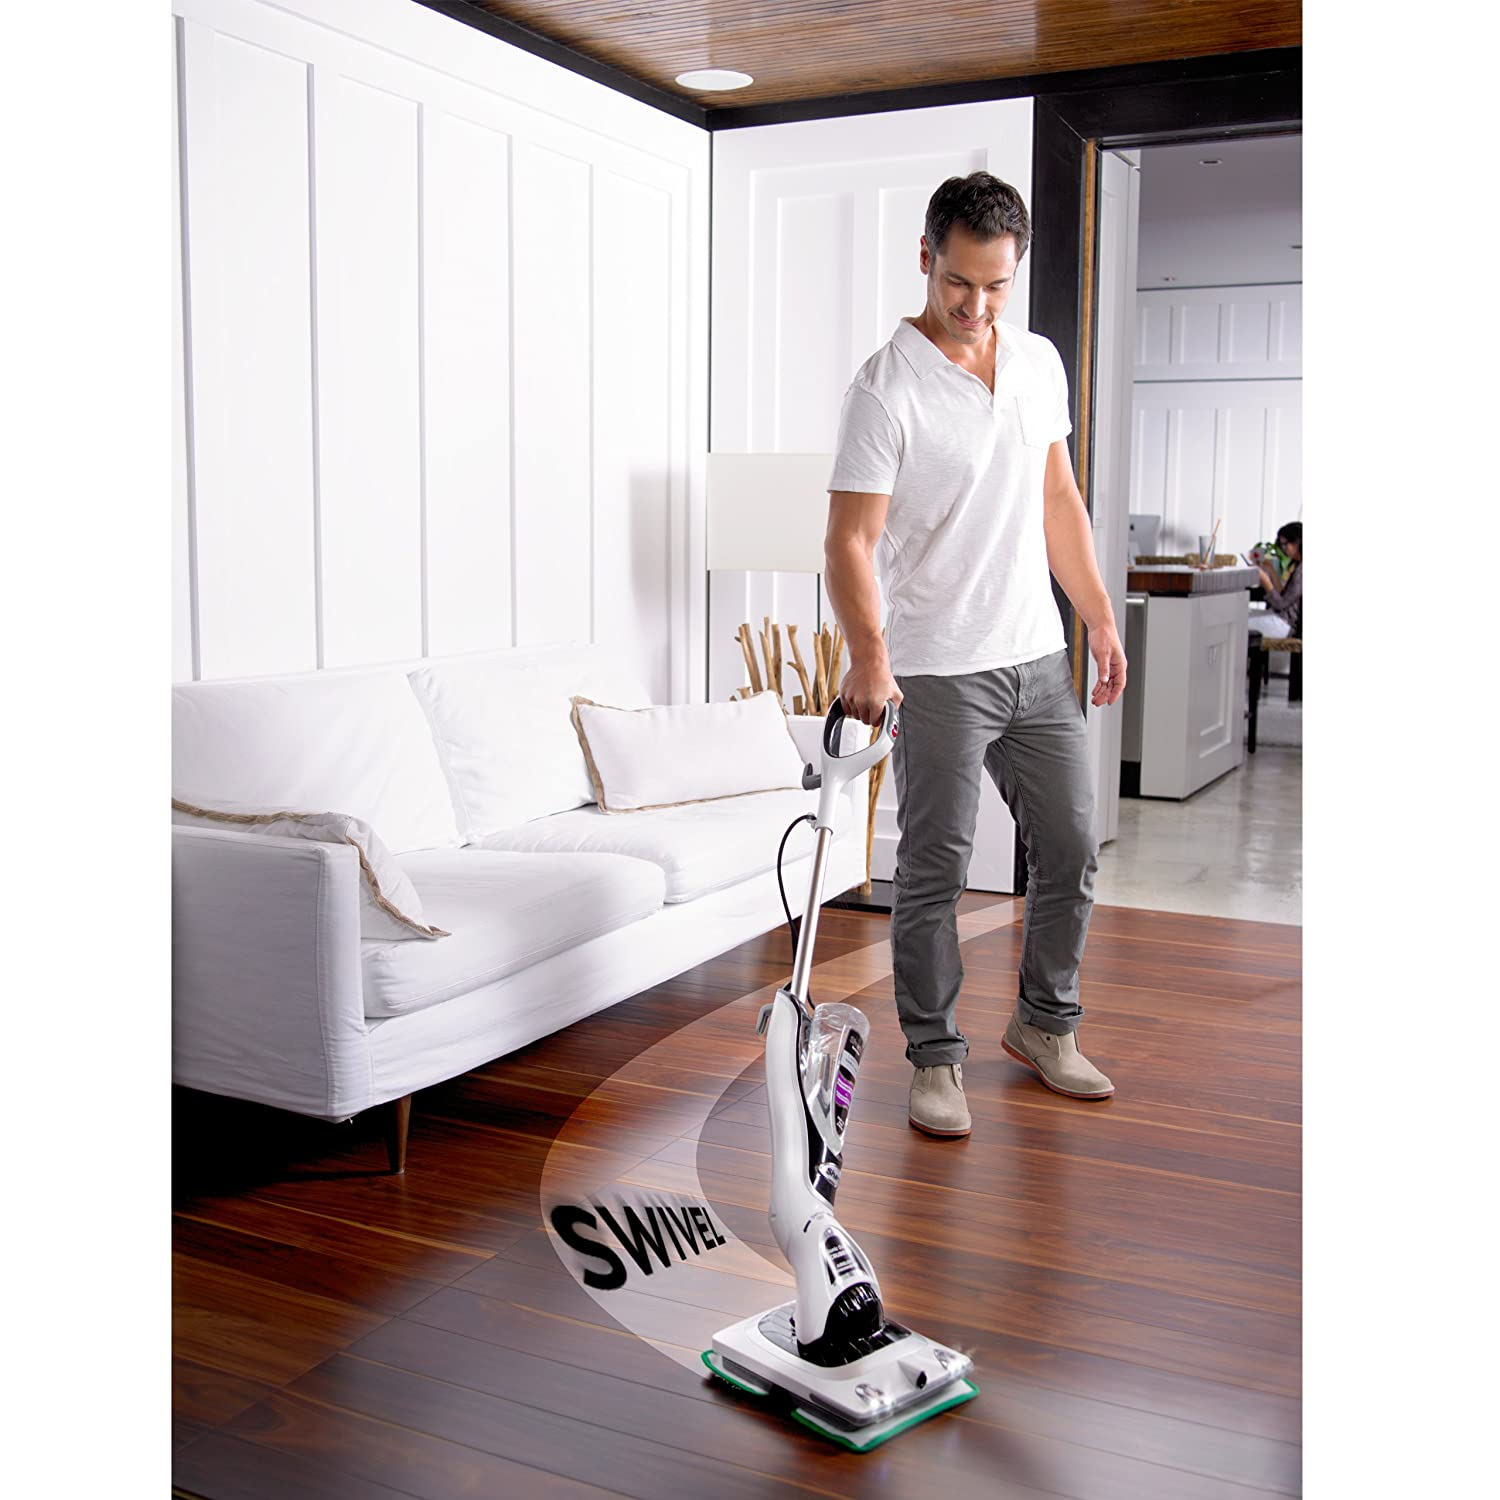 Hardwood Floor Vacuum Reviews dirt devil ud20015 upright vacuum cleaner Amazoncom Shark Sonic Duo Carpet And Hard Floor Cleaner Zz550 Home Kitchen